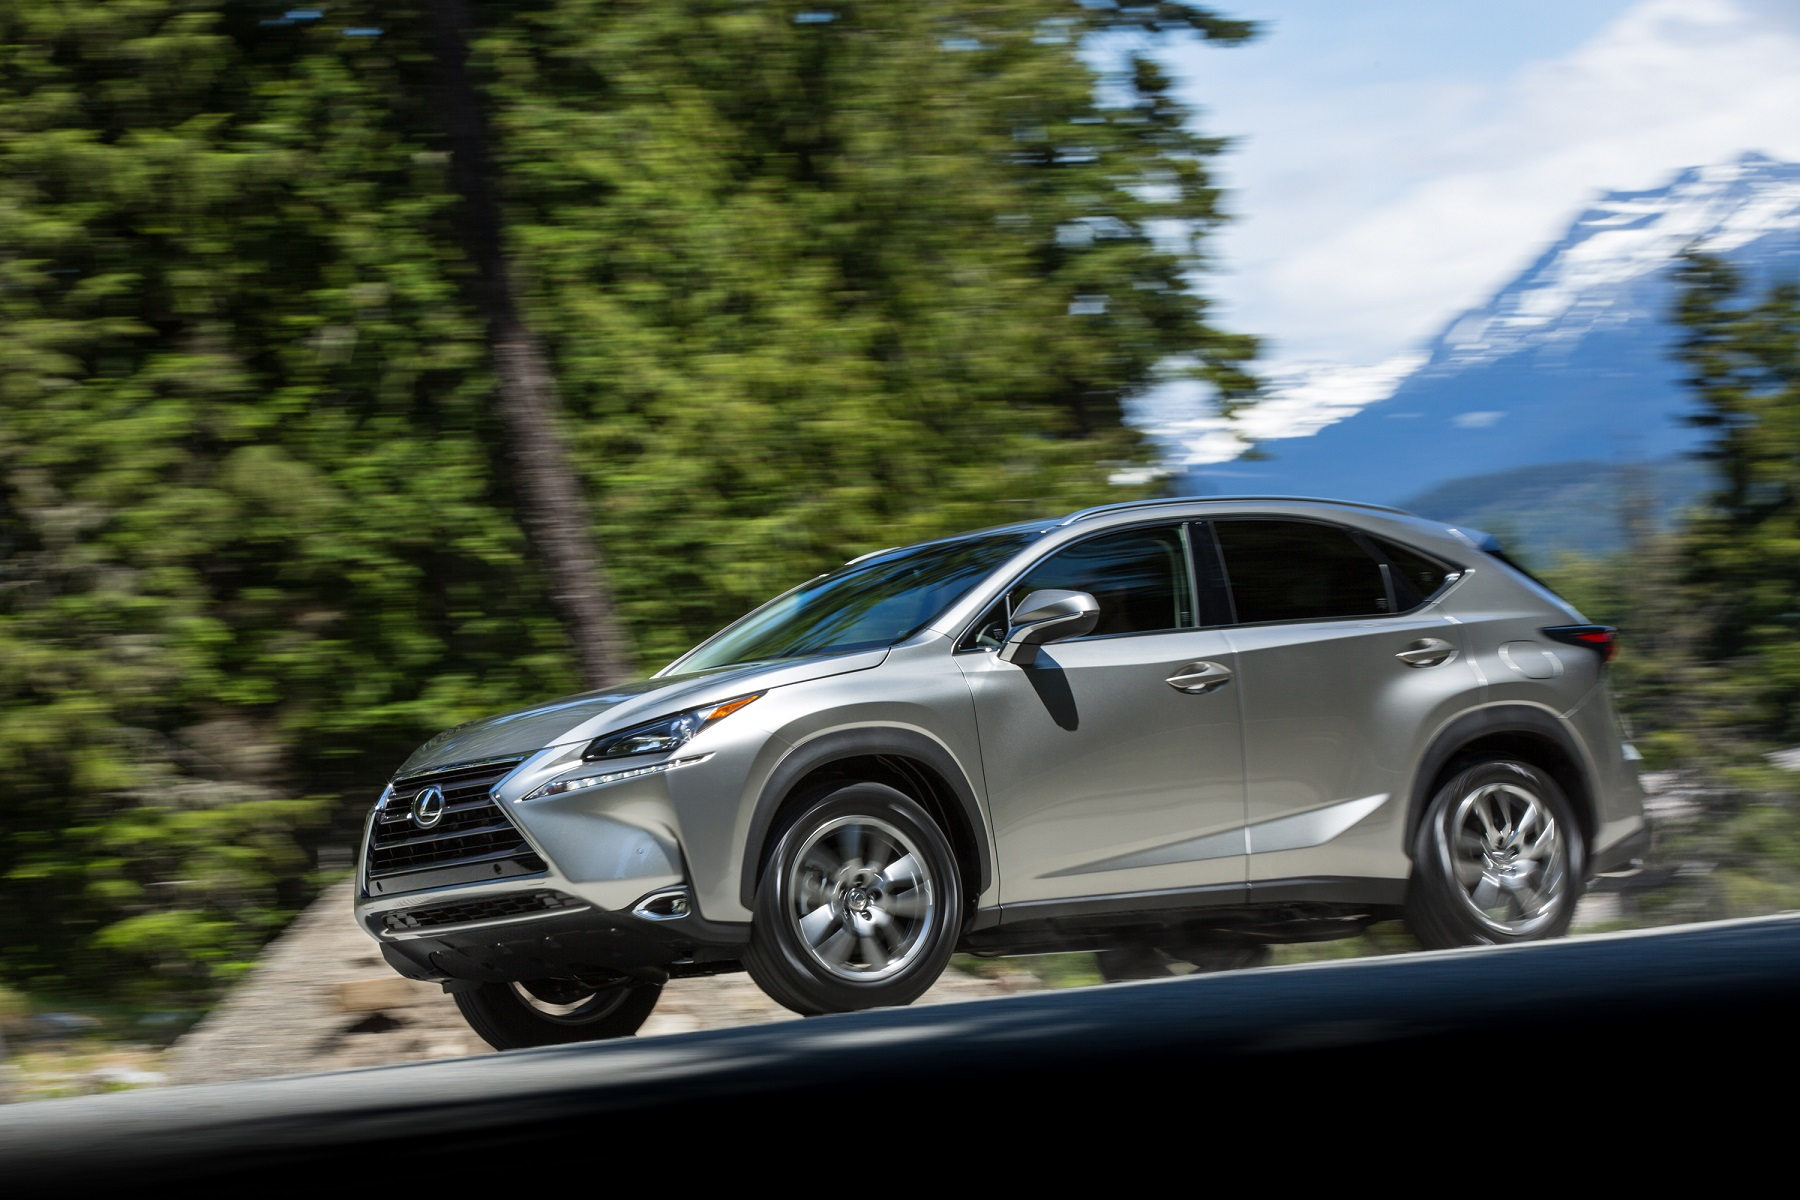 lexus nx 200t in the red hot compact luxe utility class bonus wheels groovecar. Black Bedroom Furniture Sets. Home Design Ideas